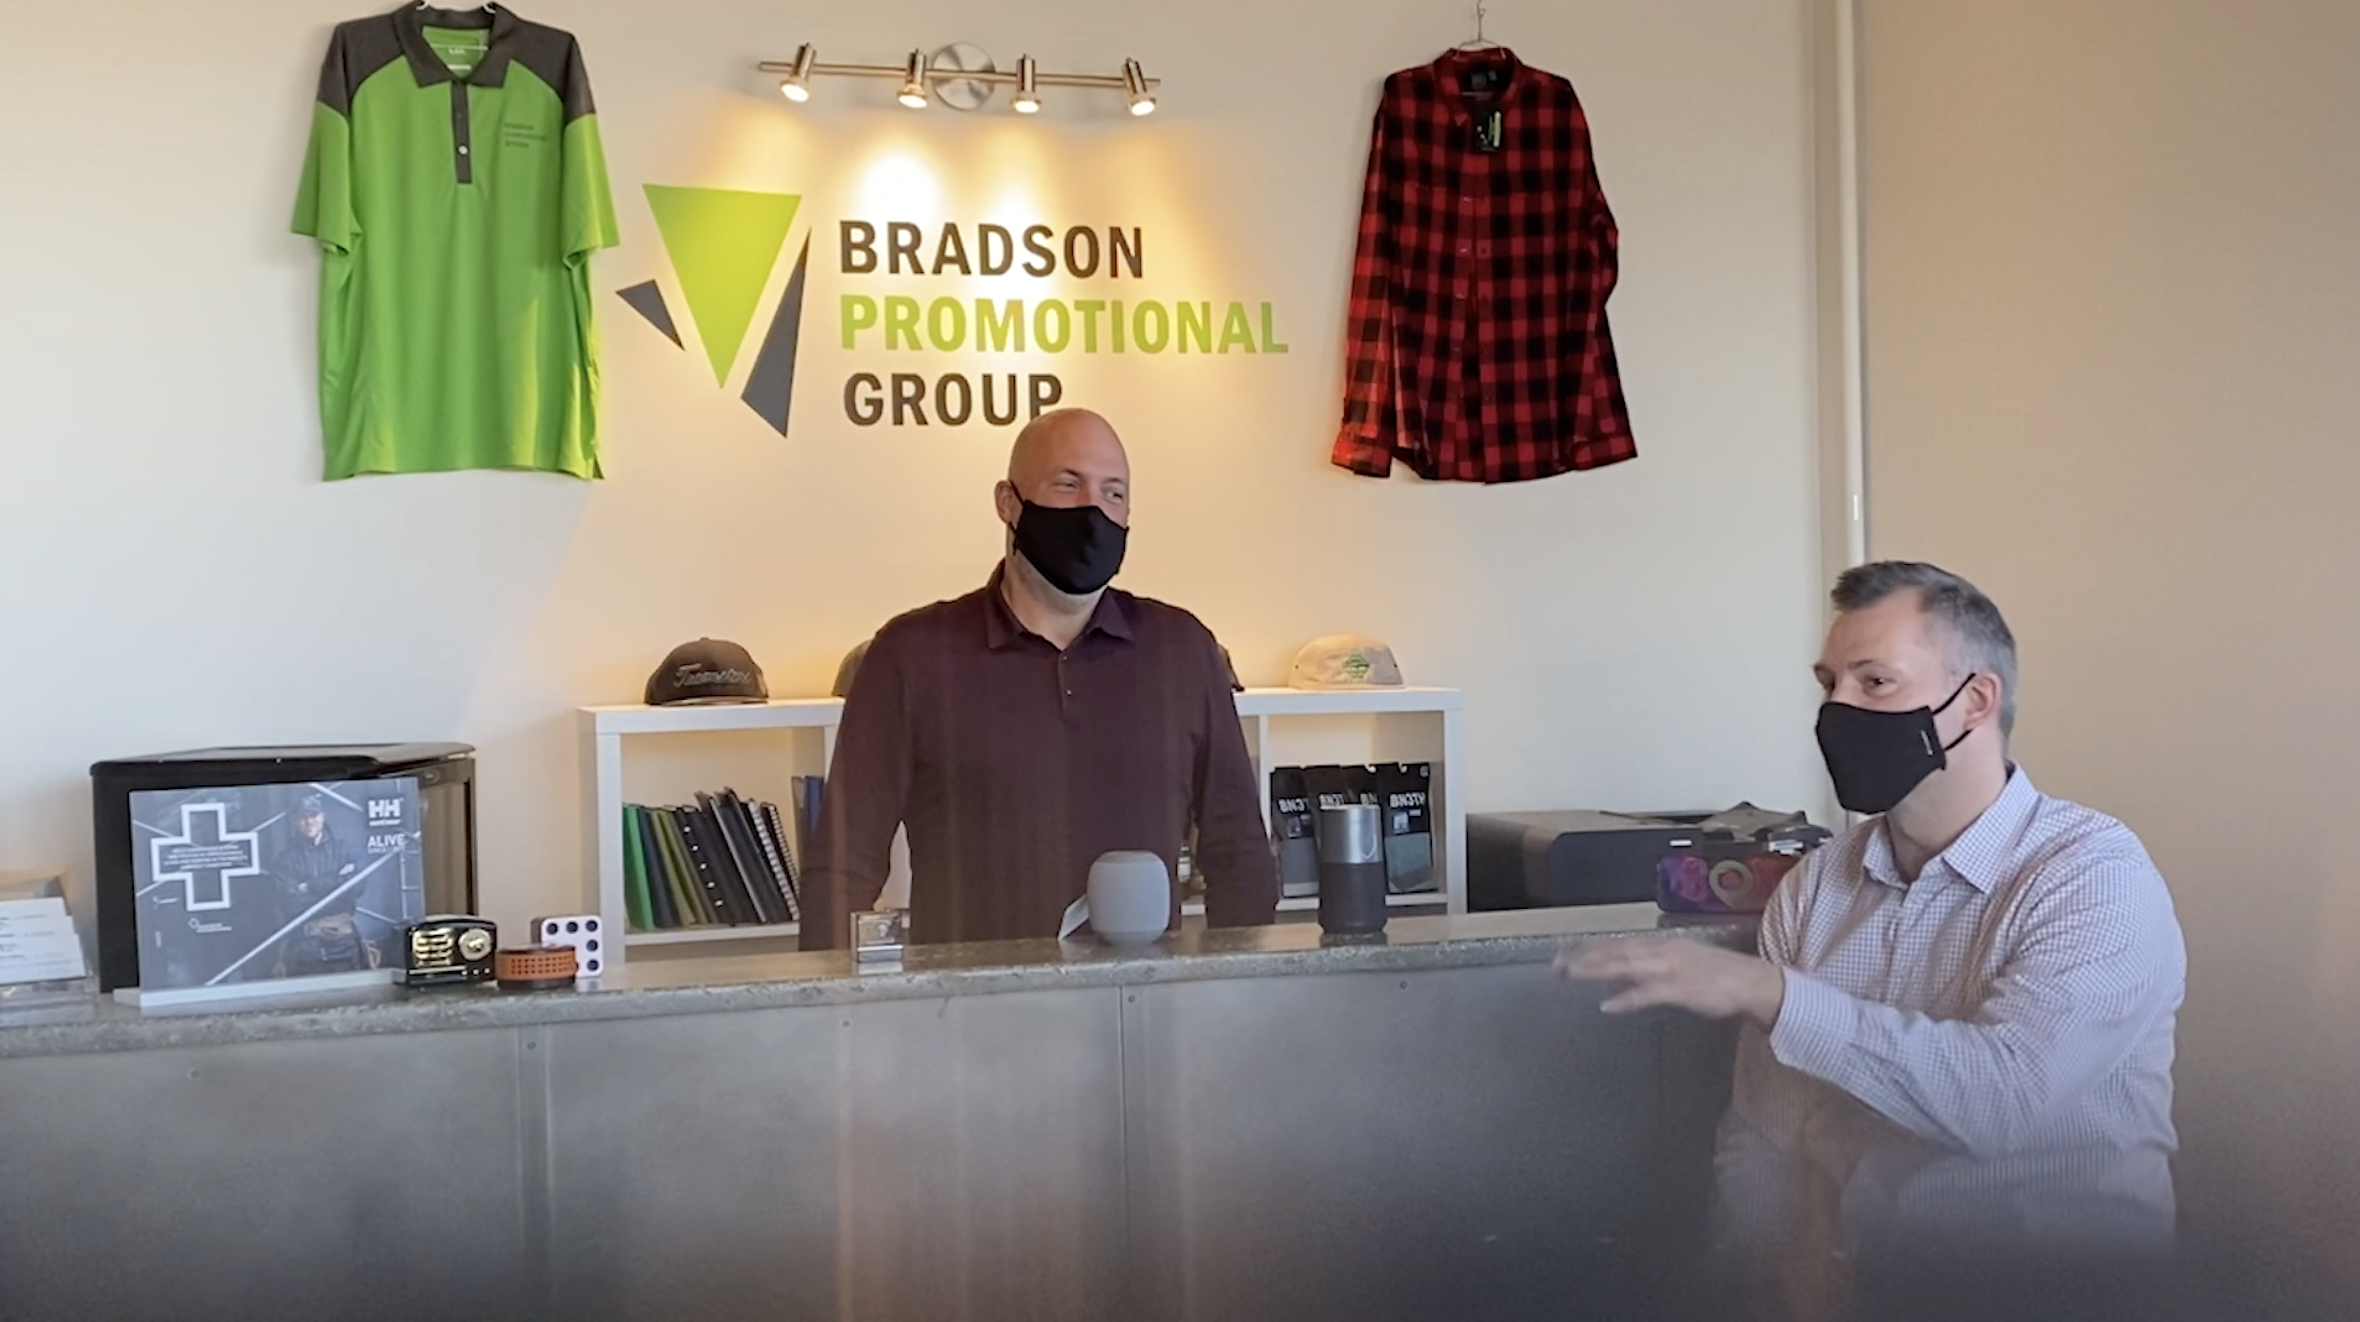 This week on the show we talk about the Oilers, Bluetooth Speakers and podcasts. Watch till the end for our announcement!